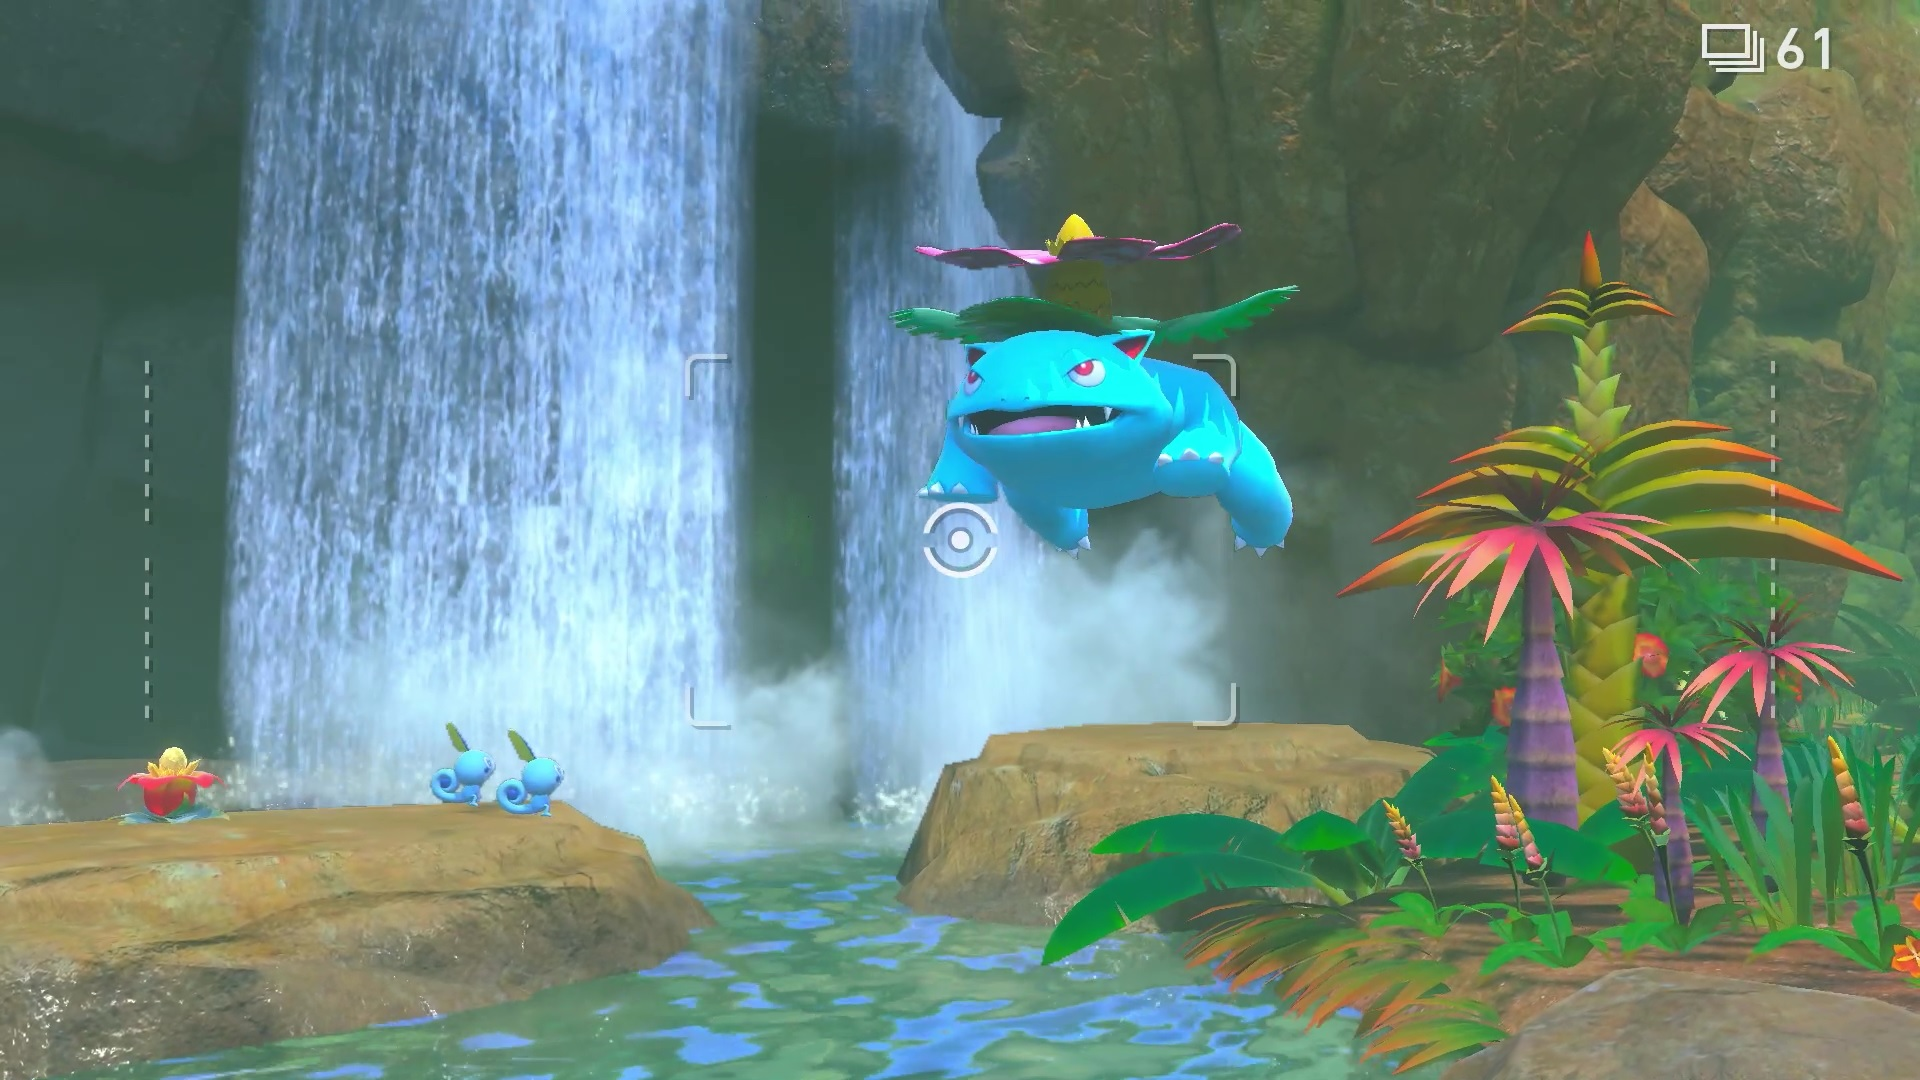 Venusaur leaps into a lake near some Sobble in a screenshot from New Pokémon Snap